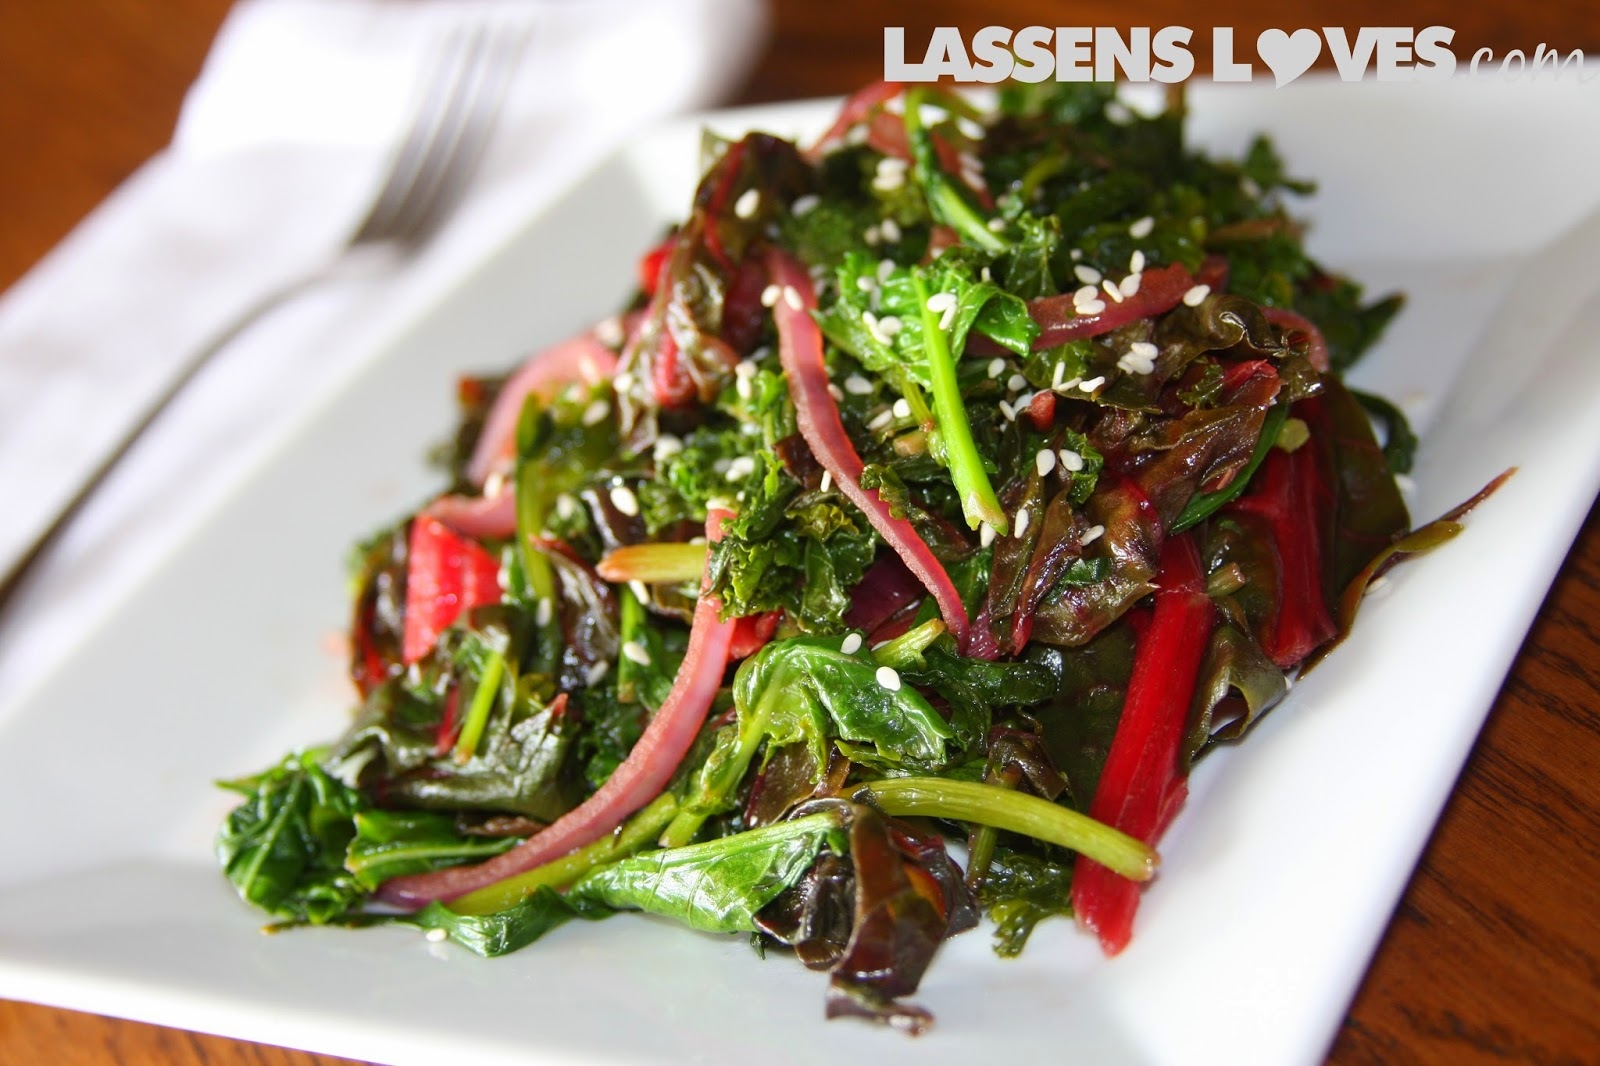 hot+to+cook+greens, healthy+greens, red+chard, dandelion+greens, greens+recipes